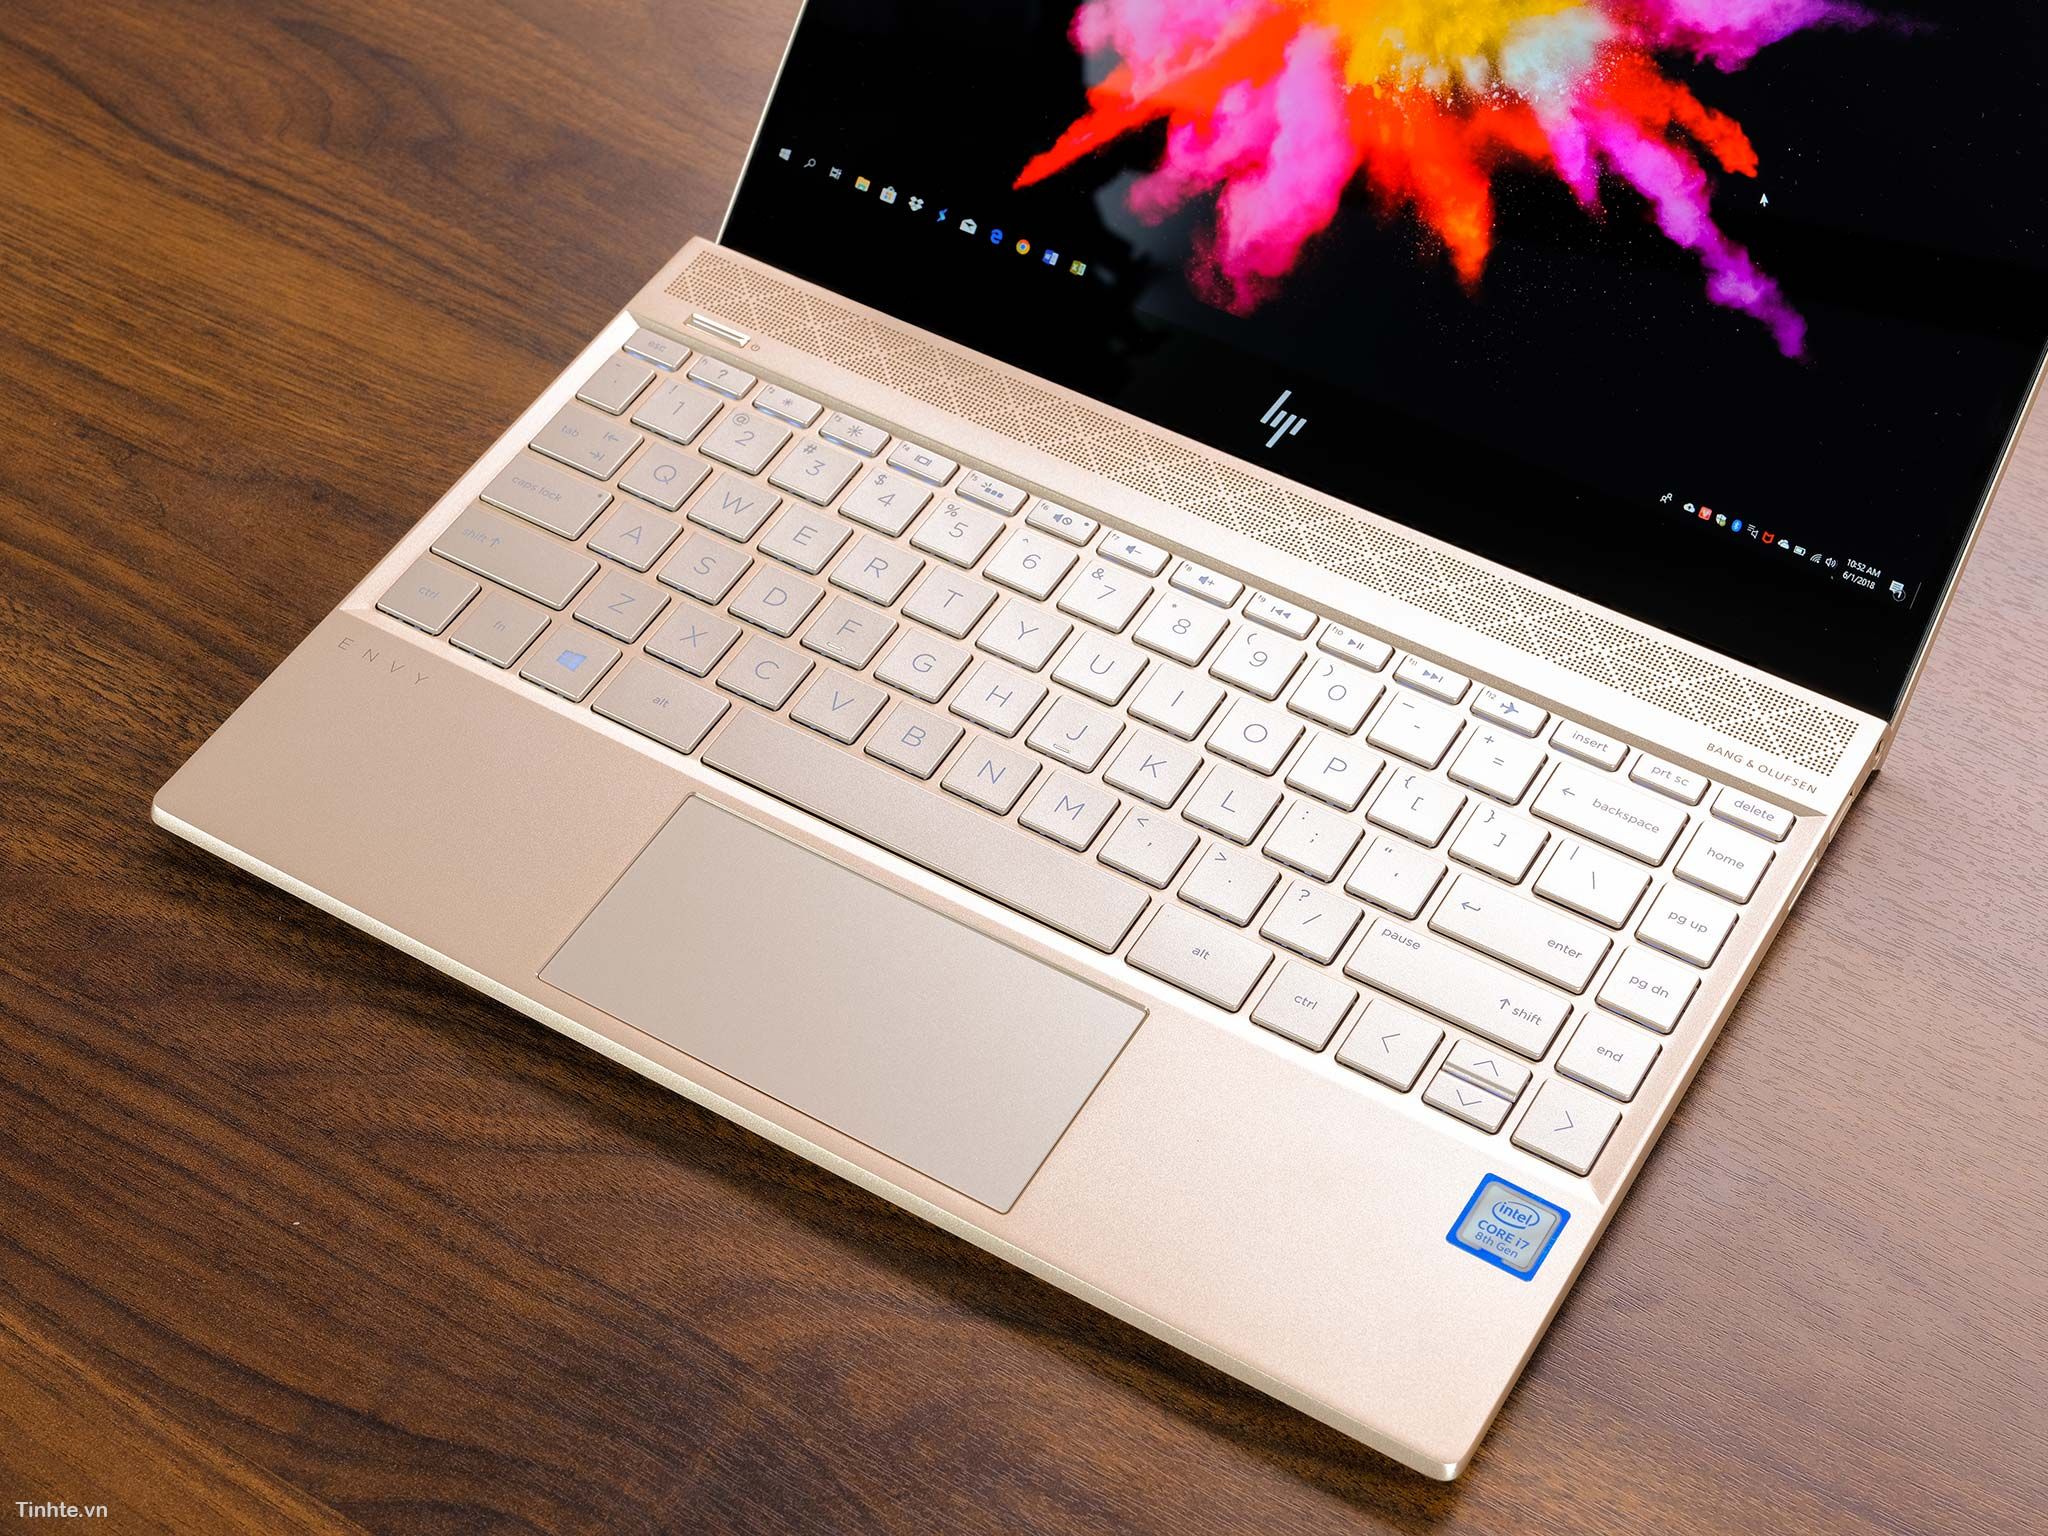 Laptop HP Envy 13 Mode 2018-1.jpg